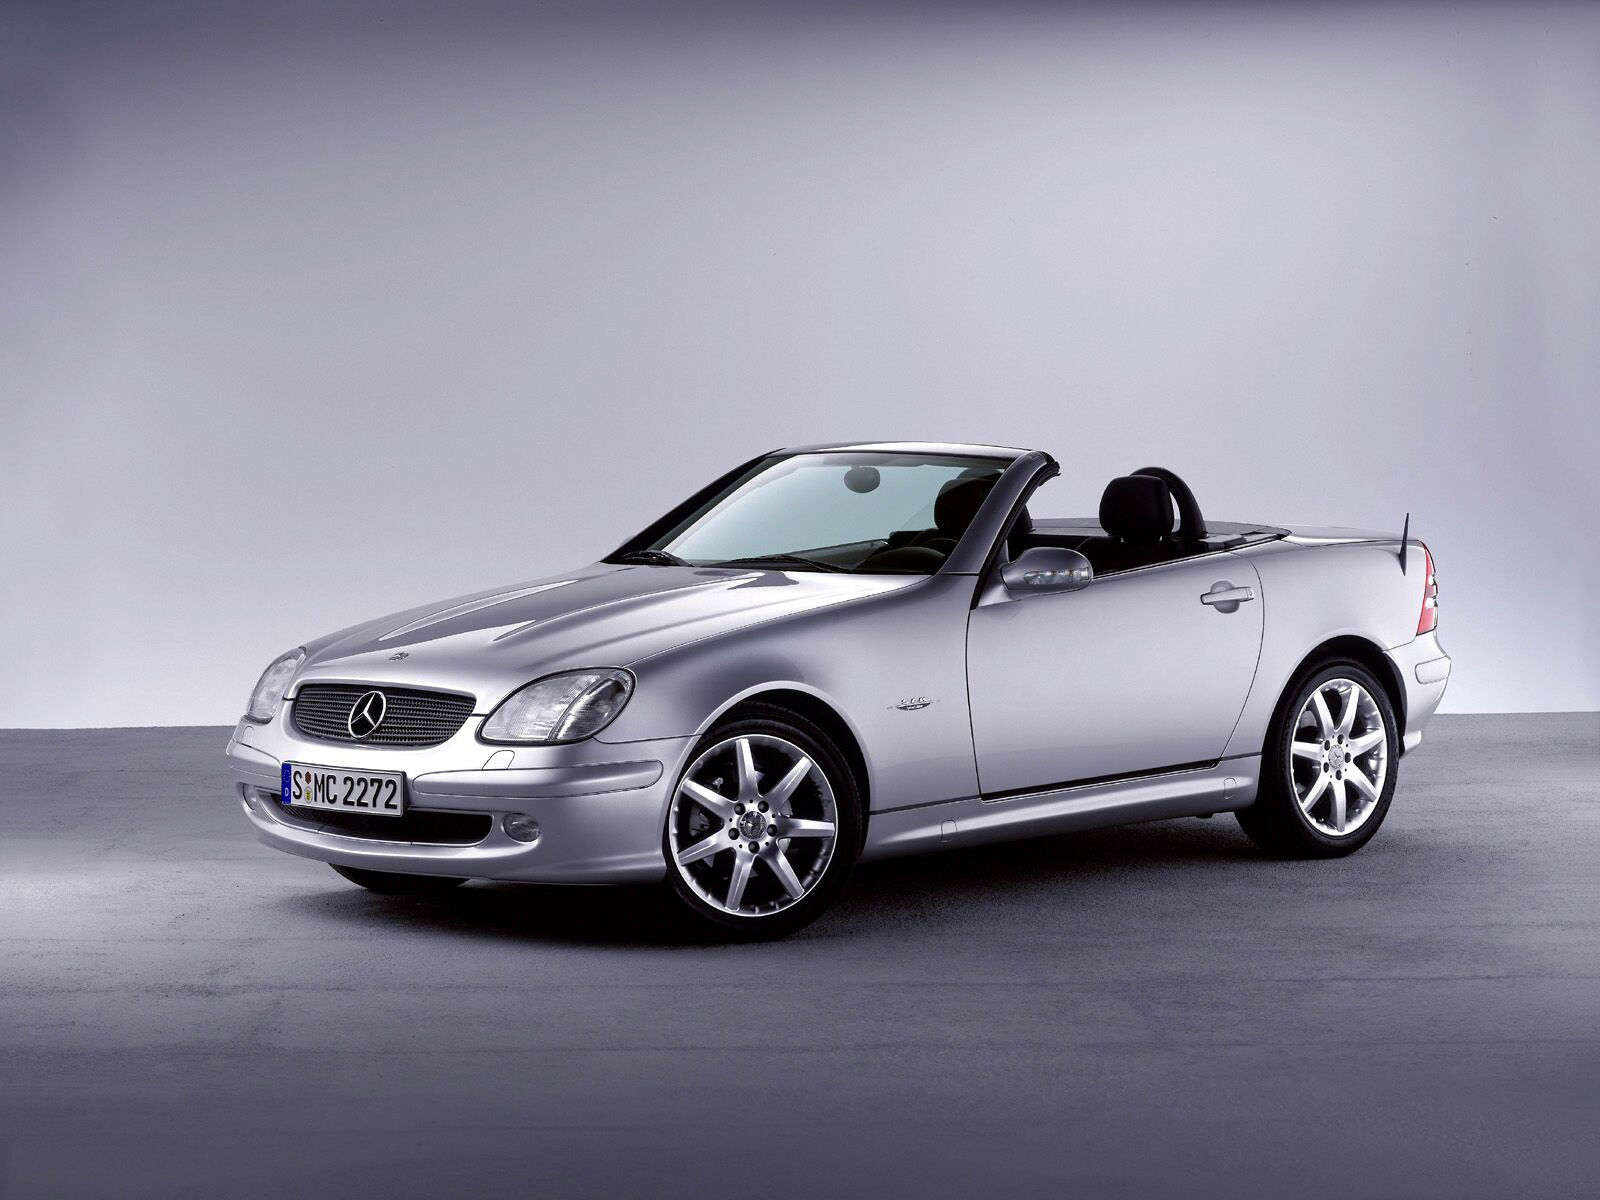 mercedes benz slk r170 specifications description photos